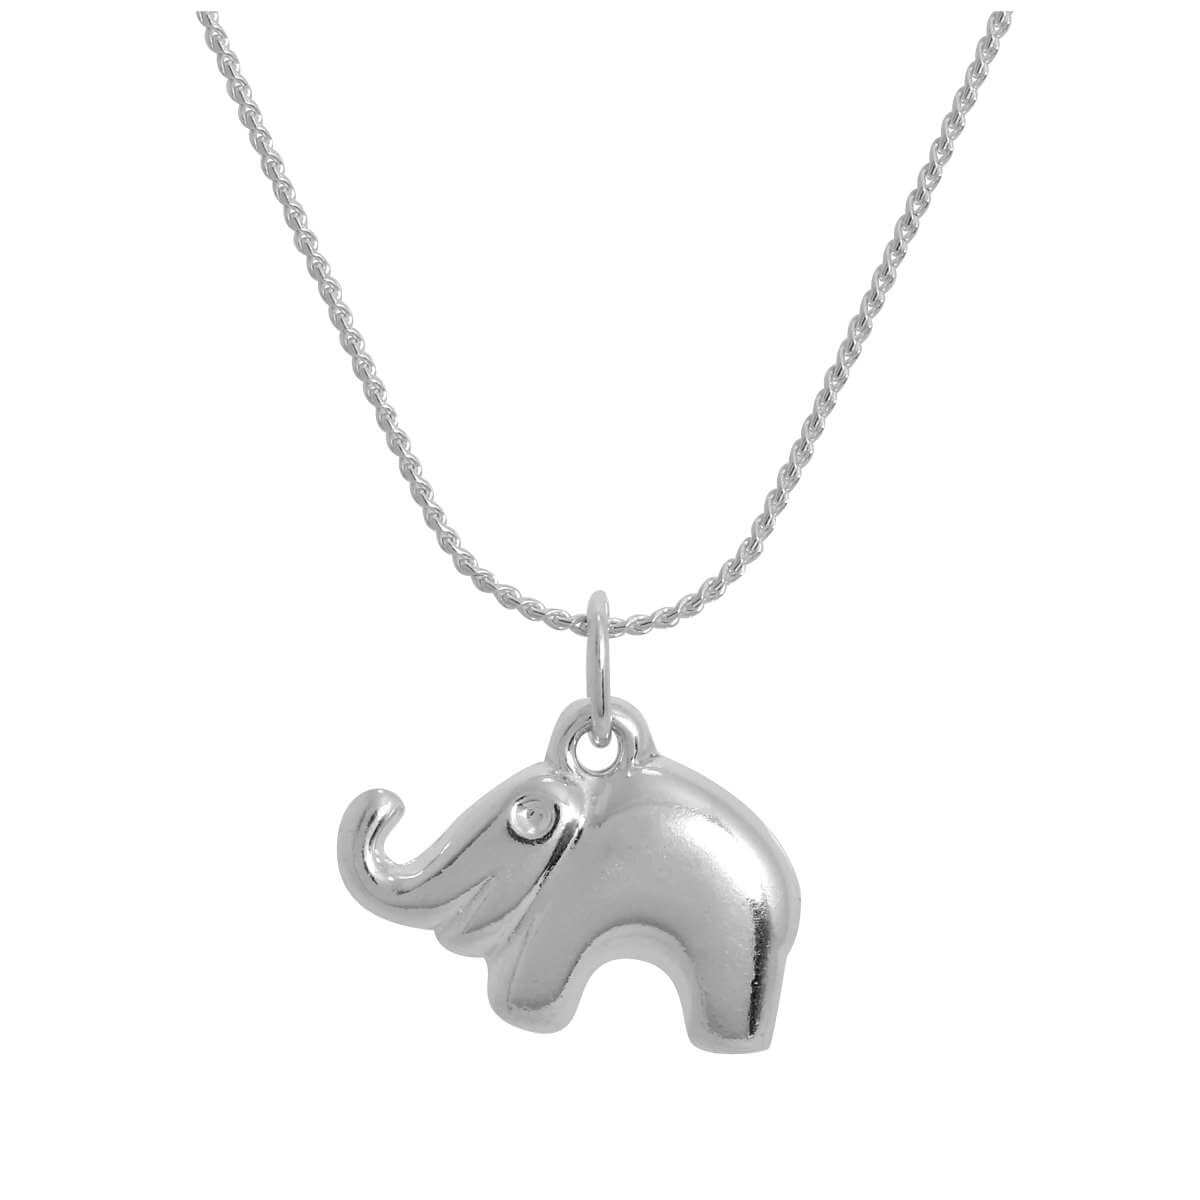 Sterling Silver Elephant Pendant Necklace 14 - 28 Inches